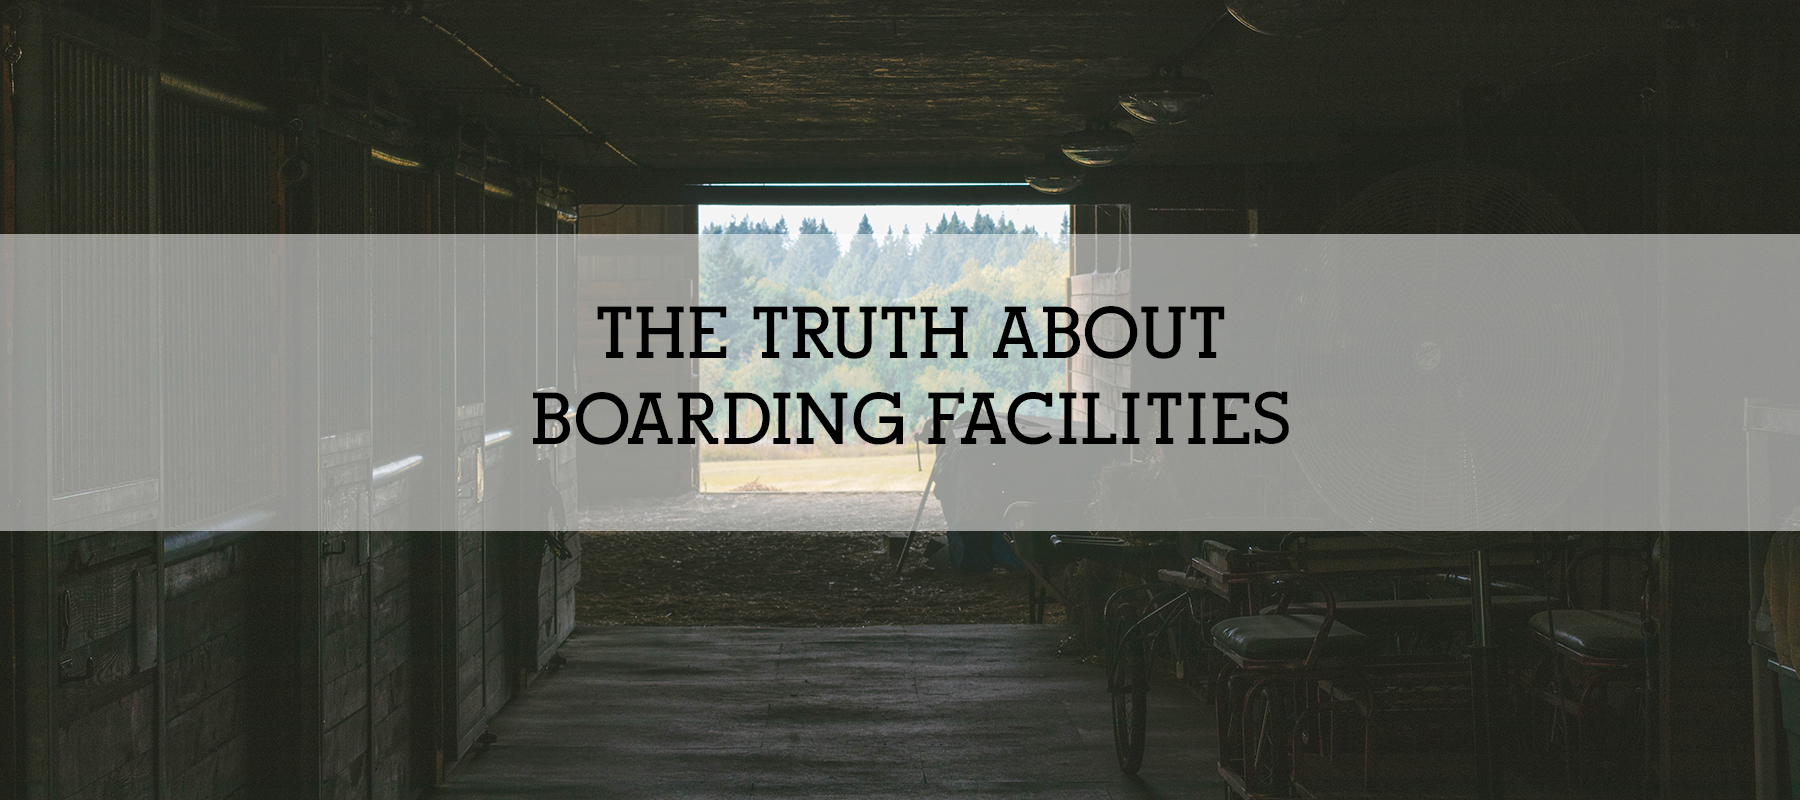 THE TRUTH ABOUT BOARDING FACILITIES